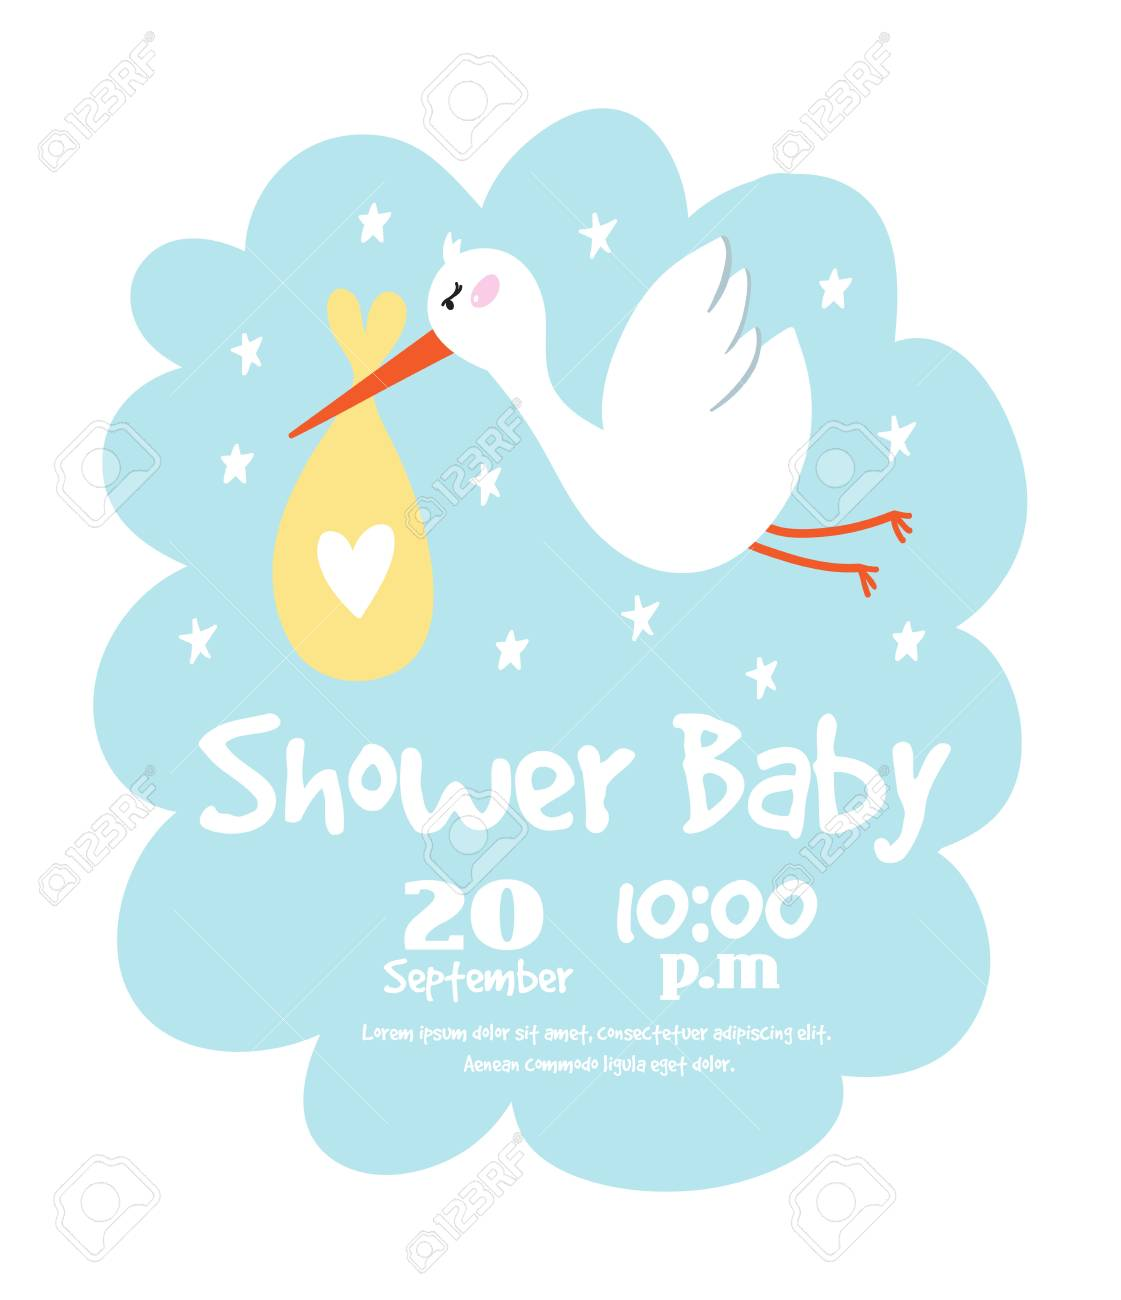 baby shower invitation card vector graphic party template vintage rh 123rf com clipart for baby shower invitations